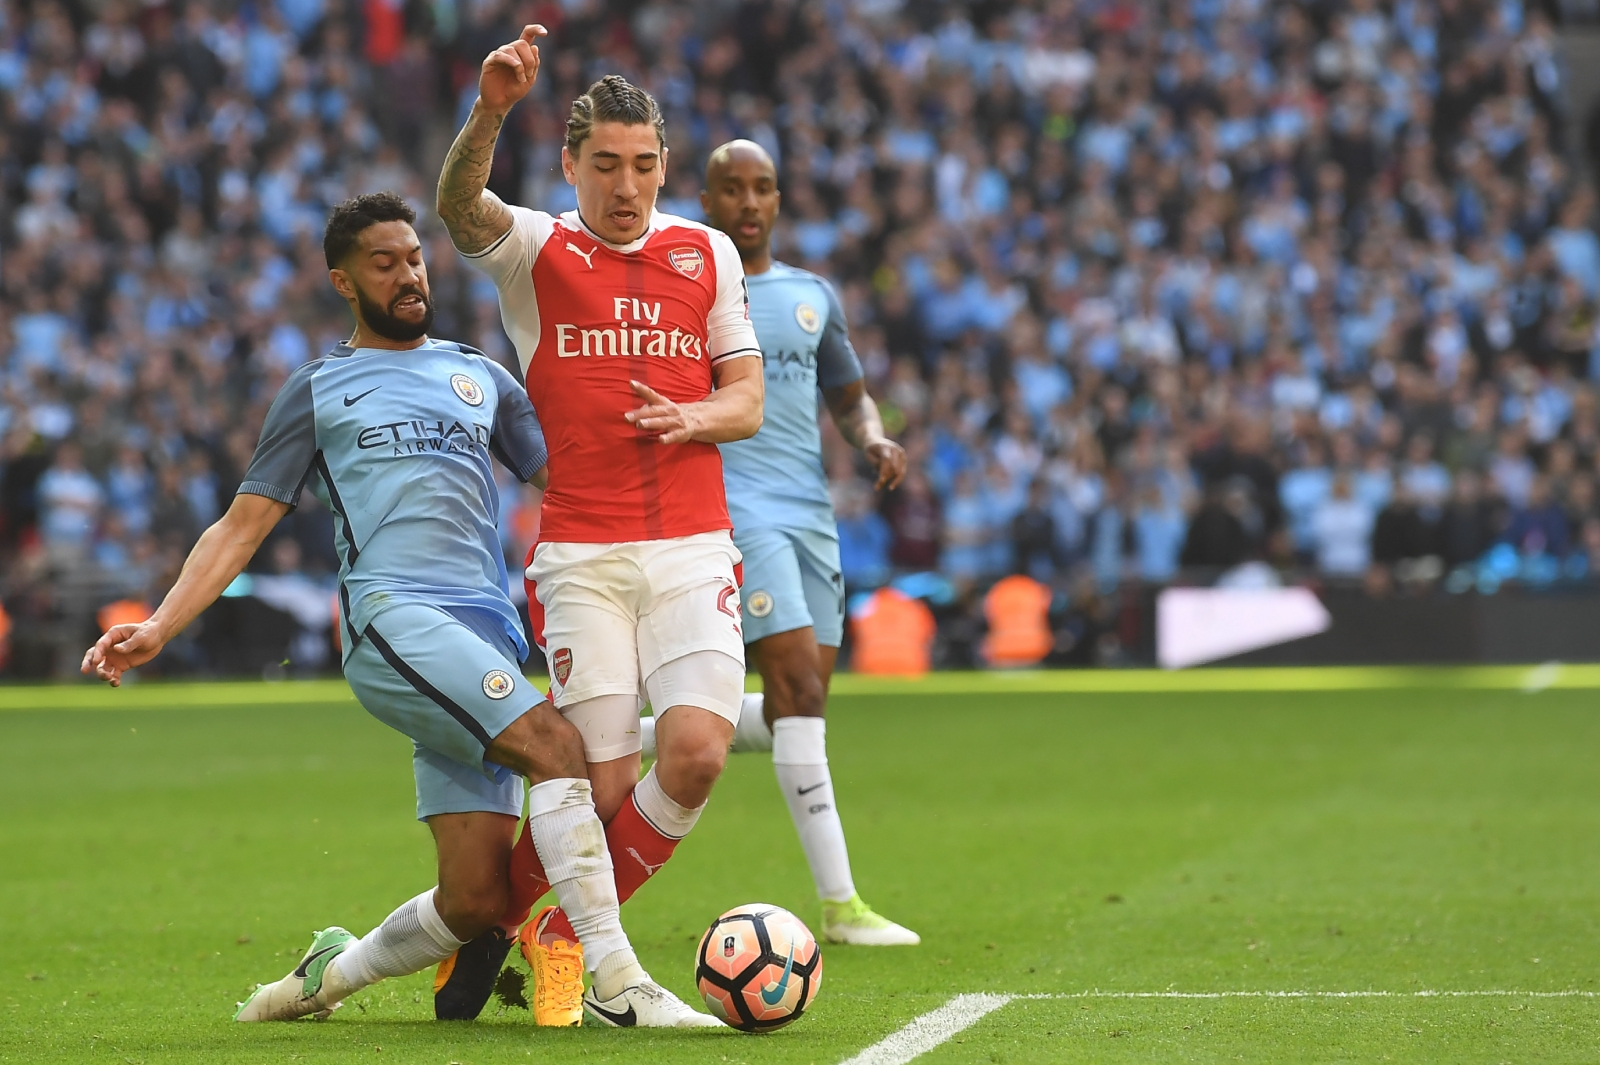 Gabriel Jesus back in training; Mustafi out for FA Cup tie